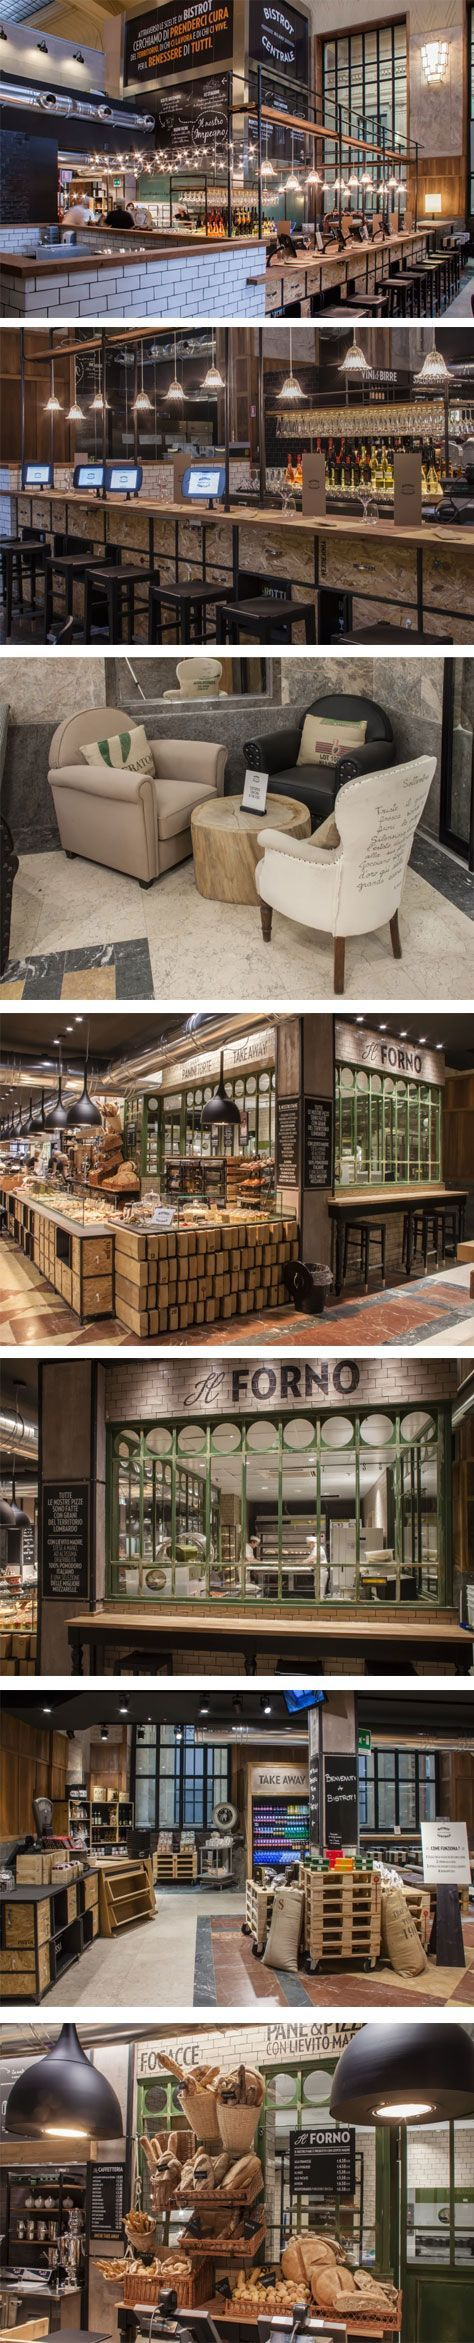 Rustic restaurant furniture - Bistrot Milano Centrale Milan Italy Restaurant Modern Rustic Interior Design Inspiration Bycocoon